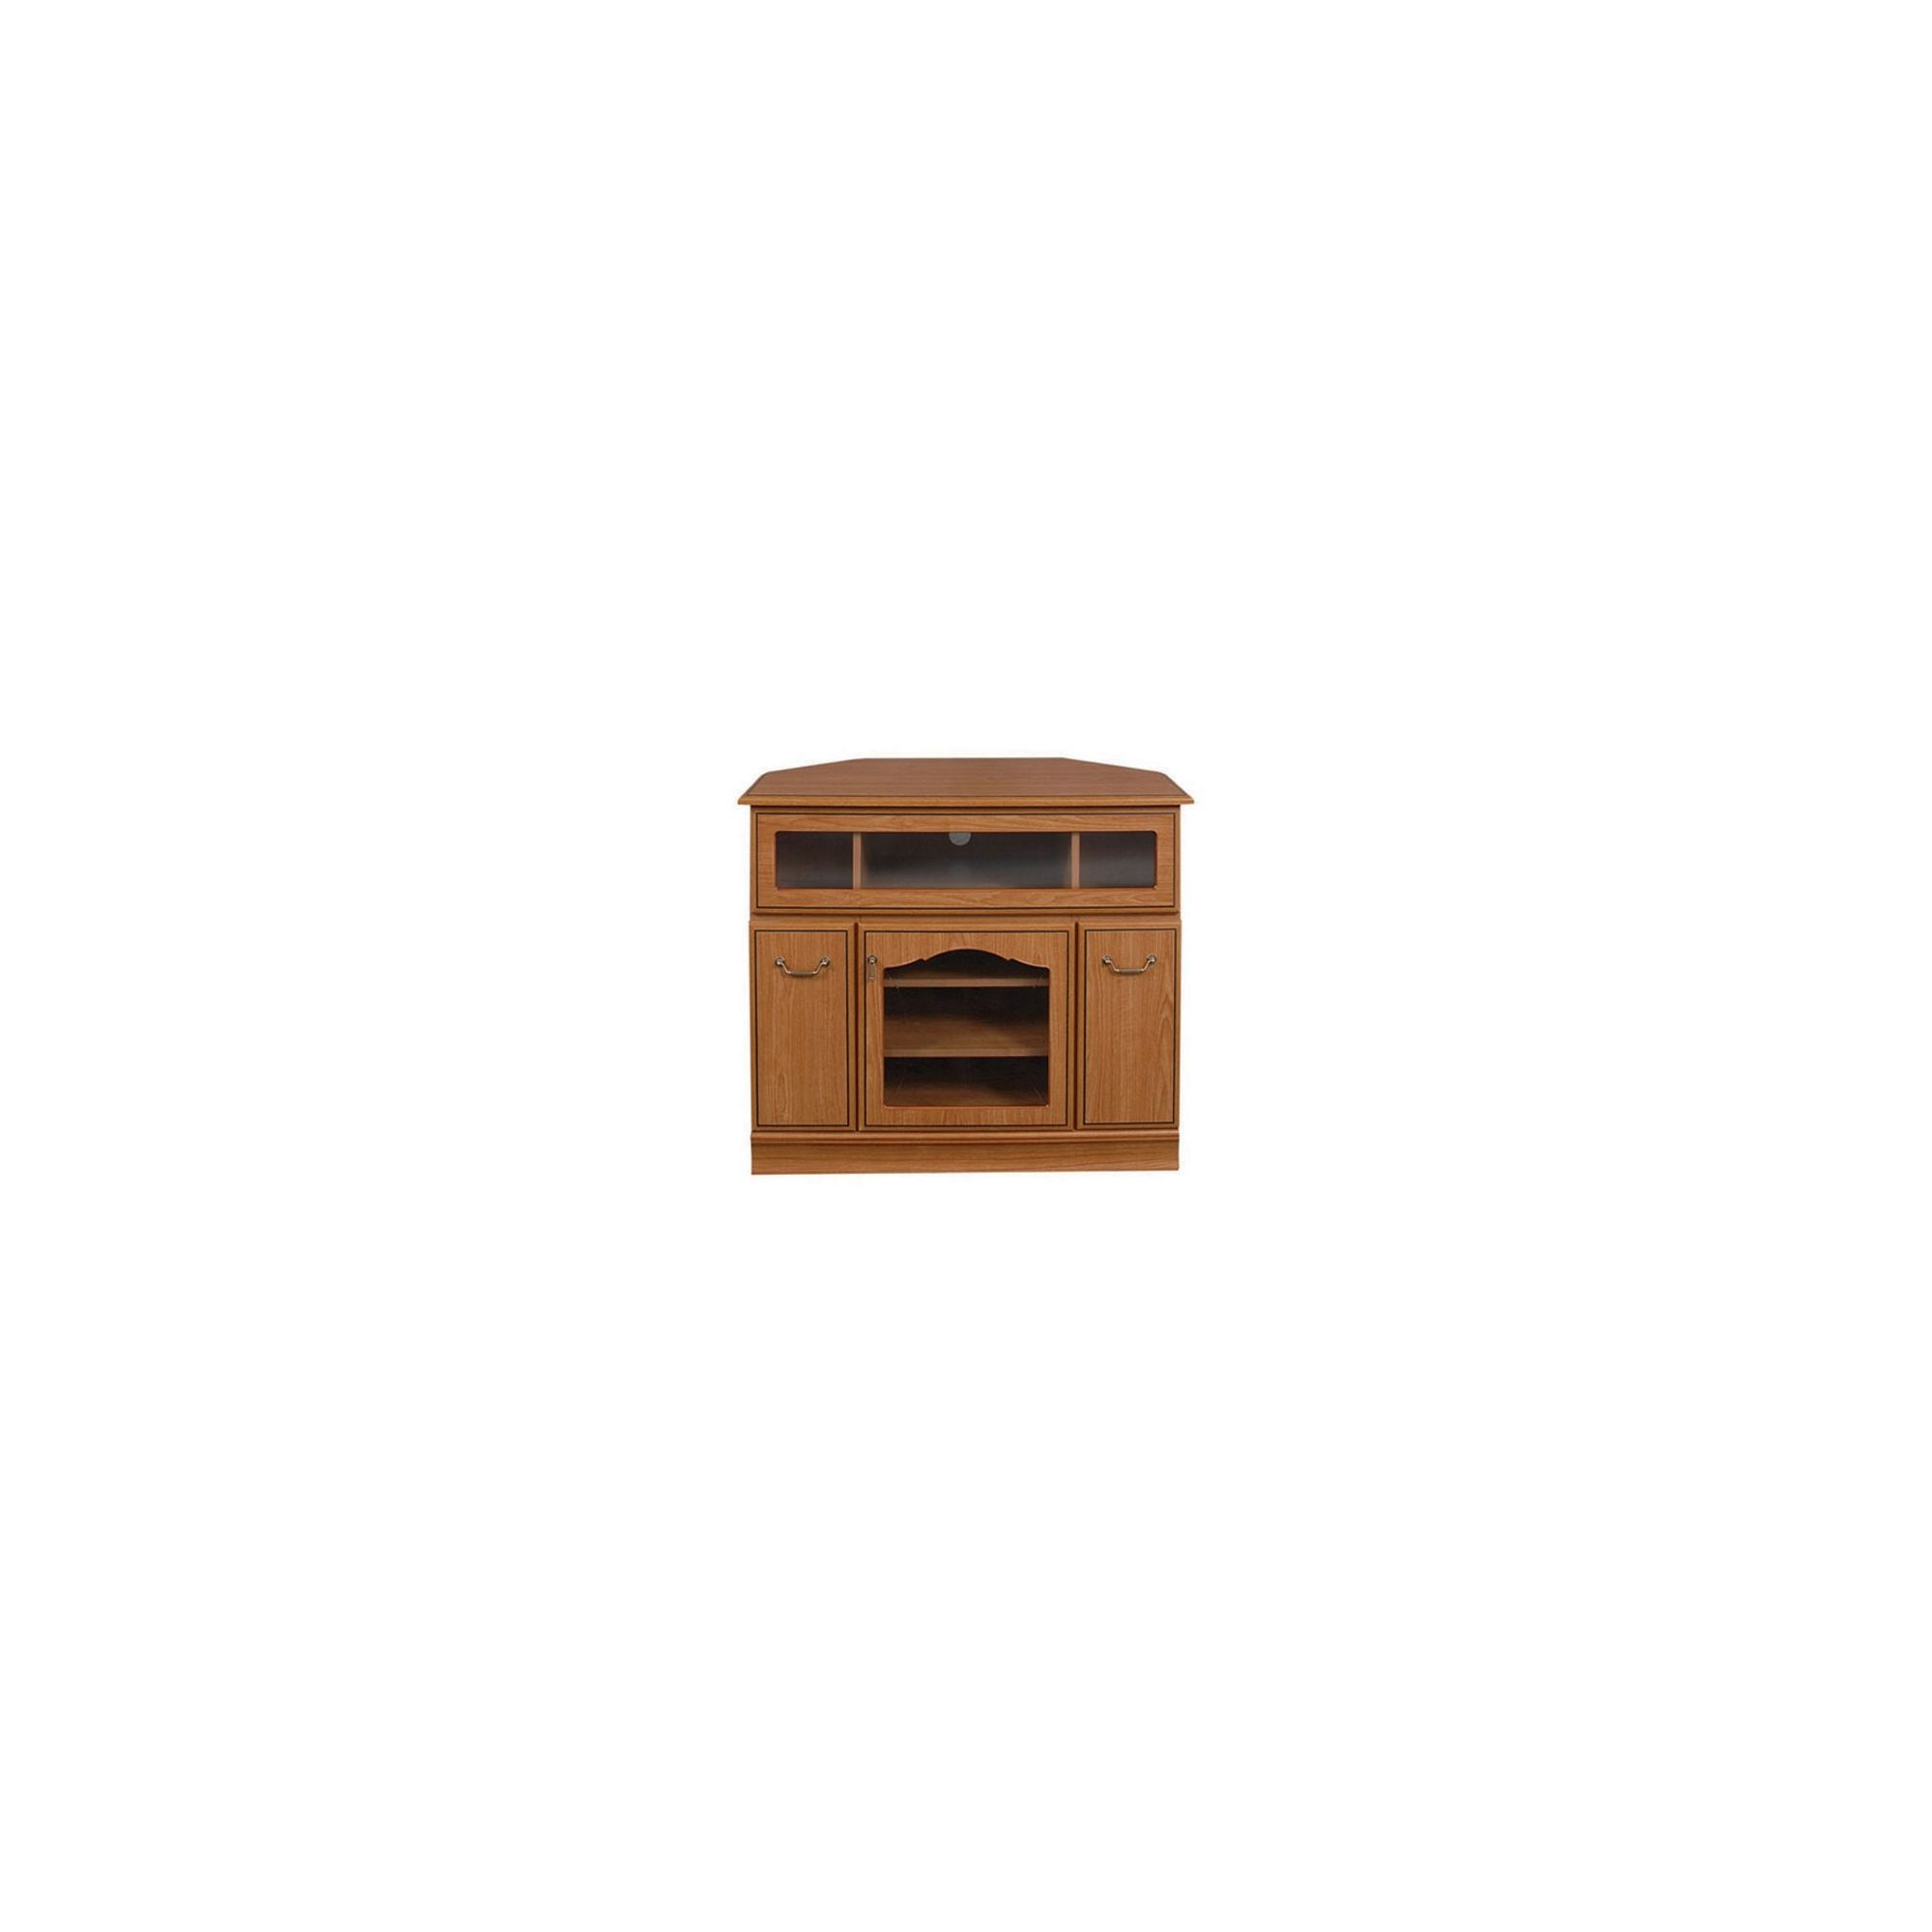 Caxton Lichfield Wooden Corner Entertainment Cabinet for LCD / Plasmas at Tesco Direct